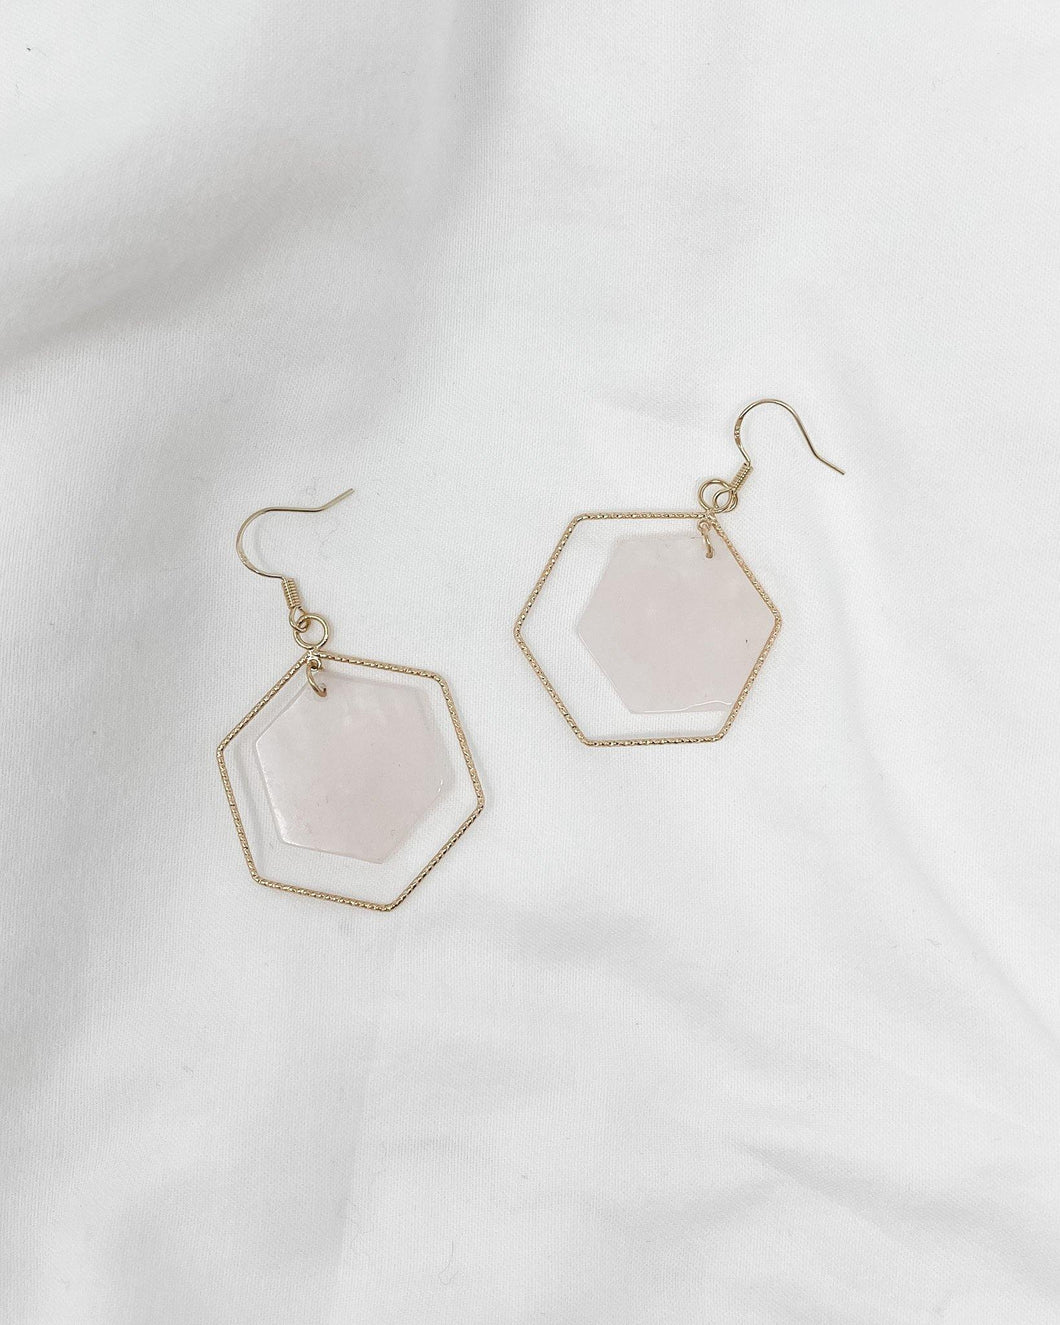 Rose Hexagon Earrings - The Local Women's Boutique Clothing